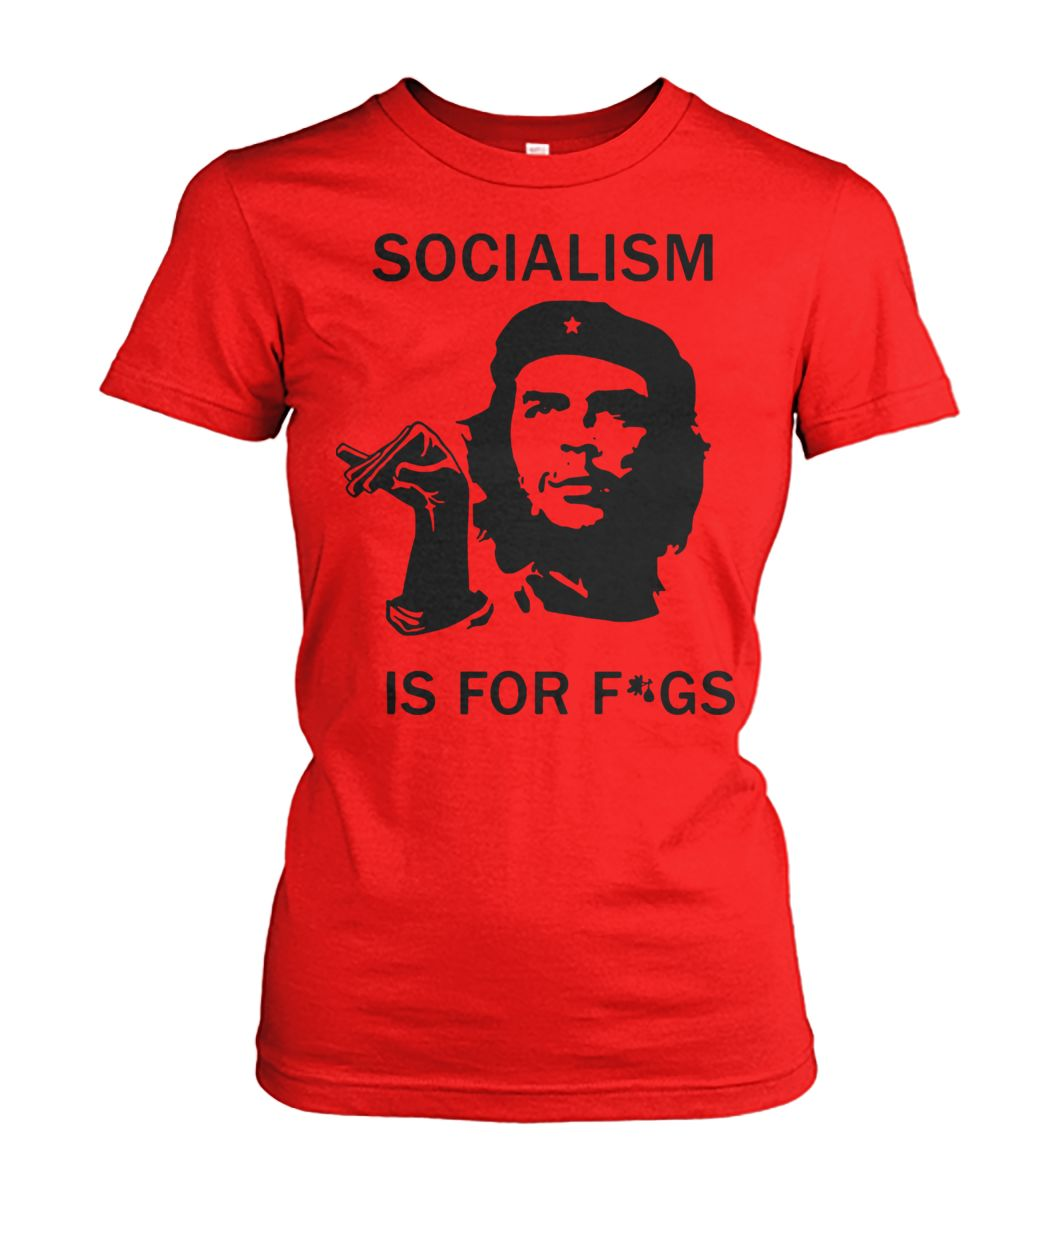 Che guevara socialism is for figs women's crew tee